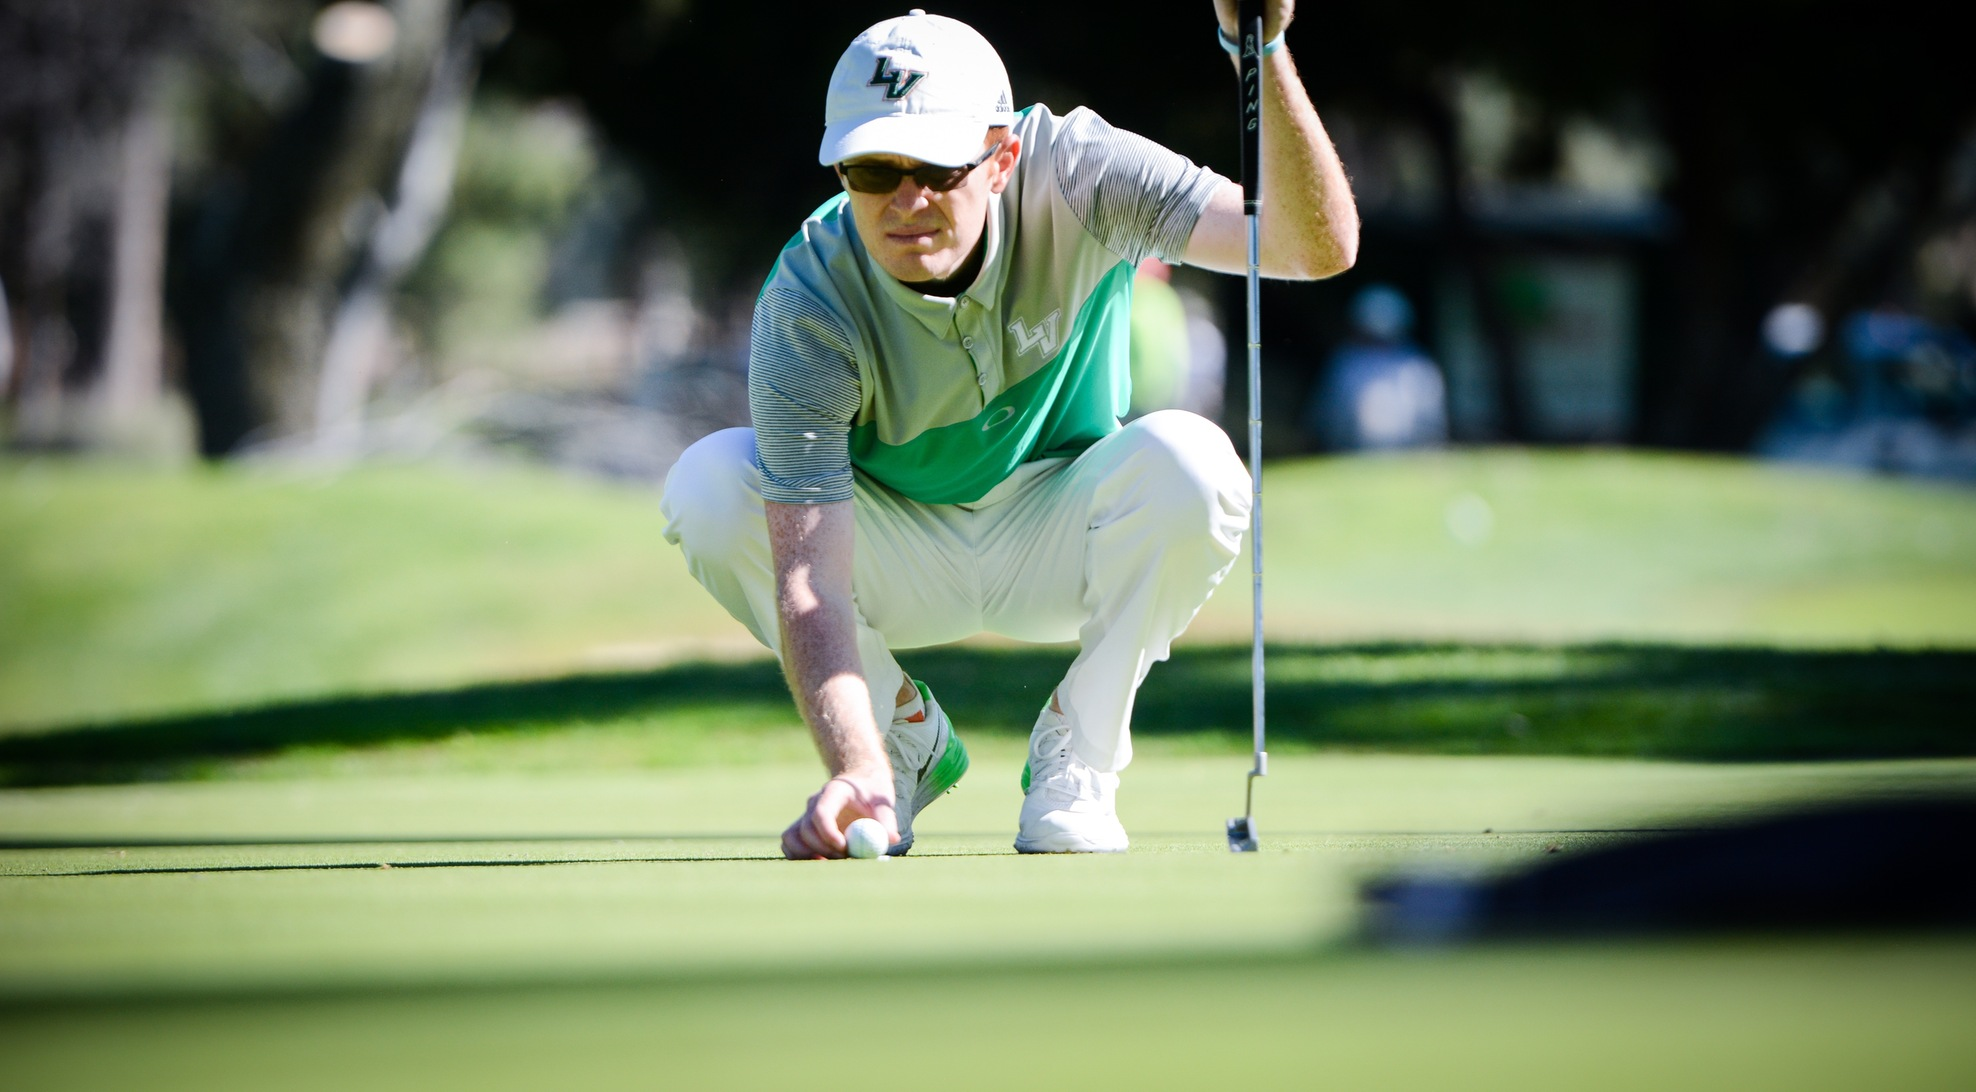 Spencer leads Men's Golf at Las Vegas Desert Classic